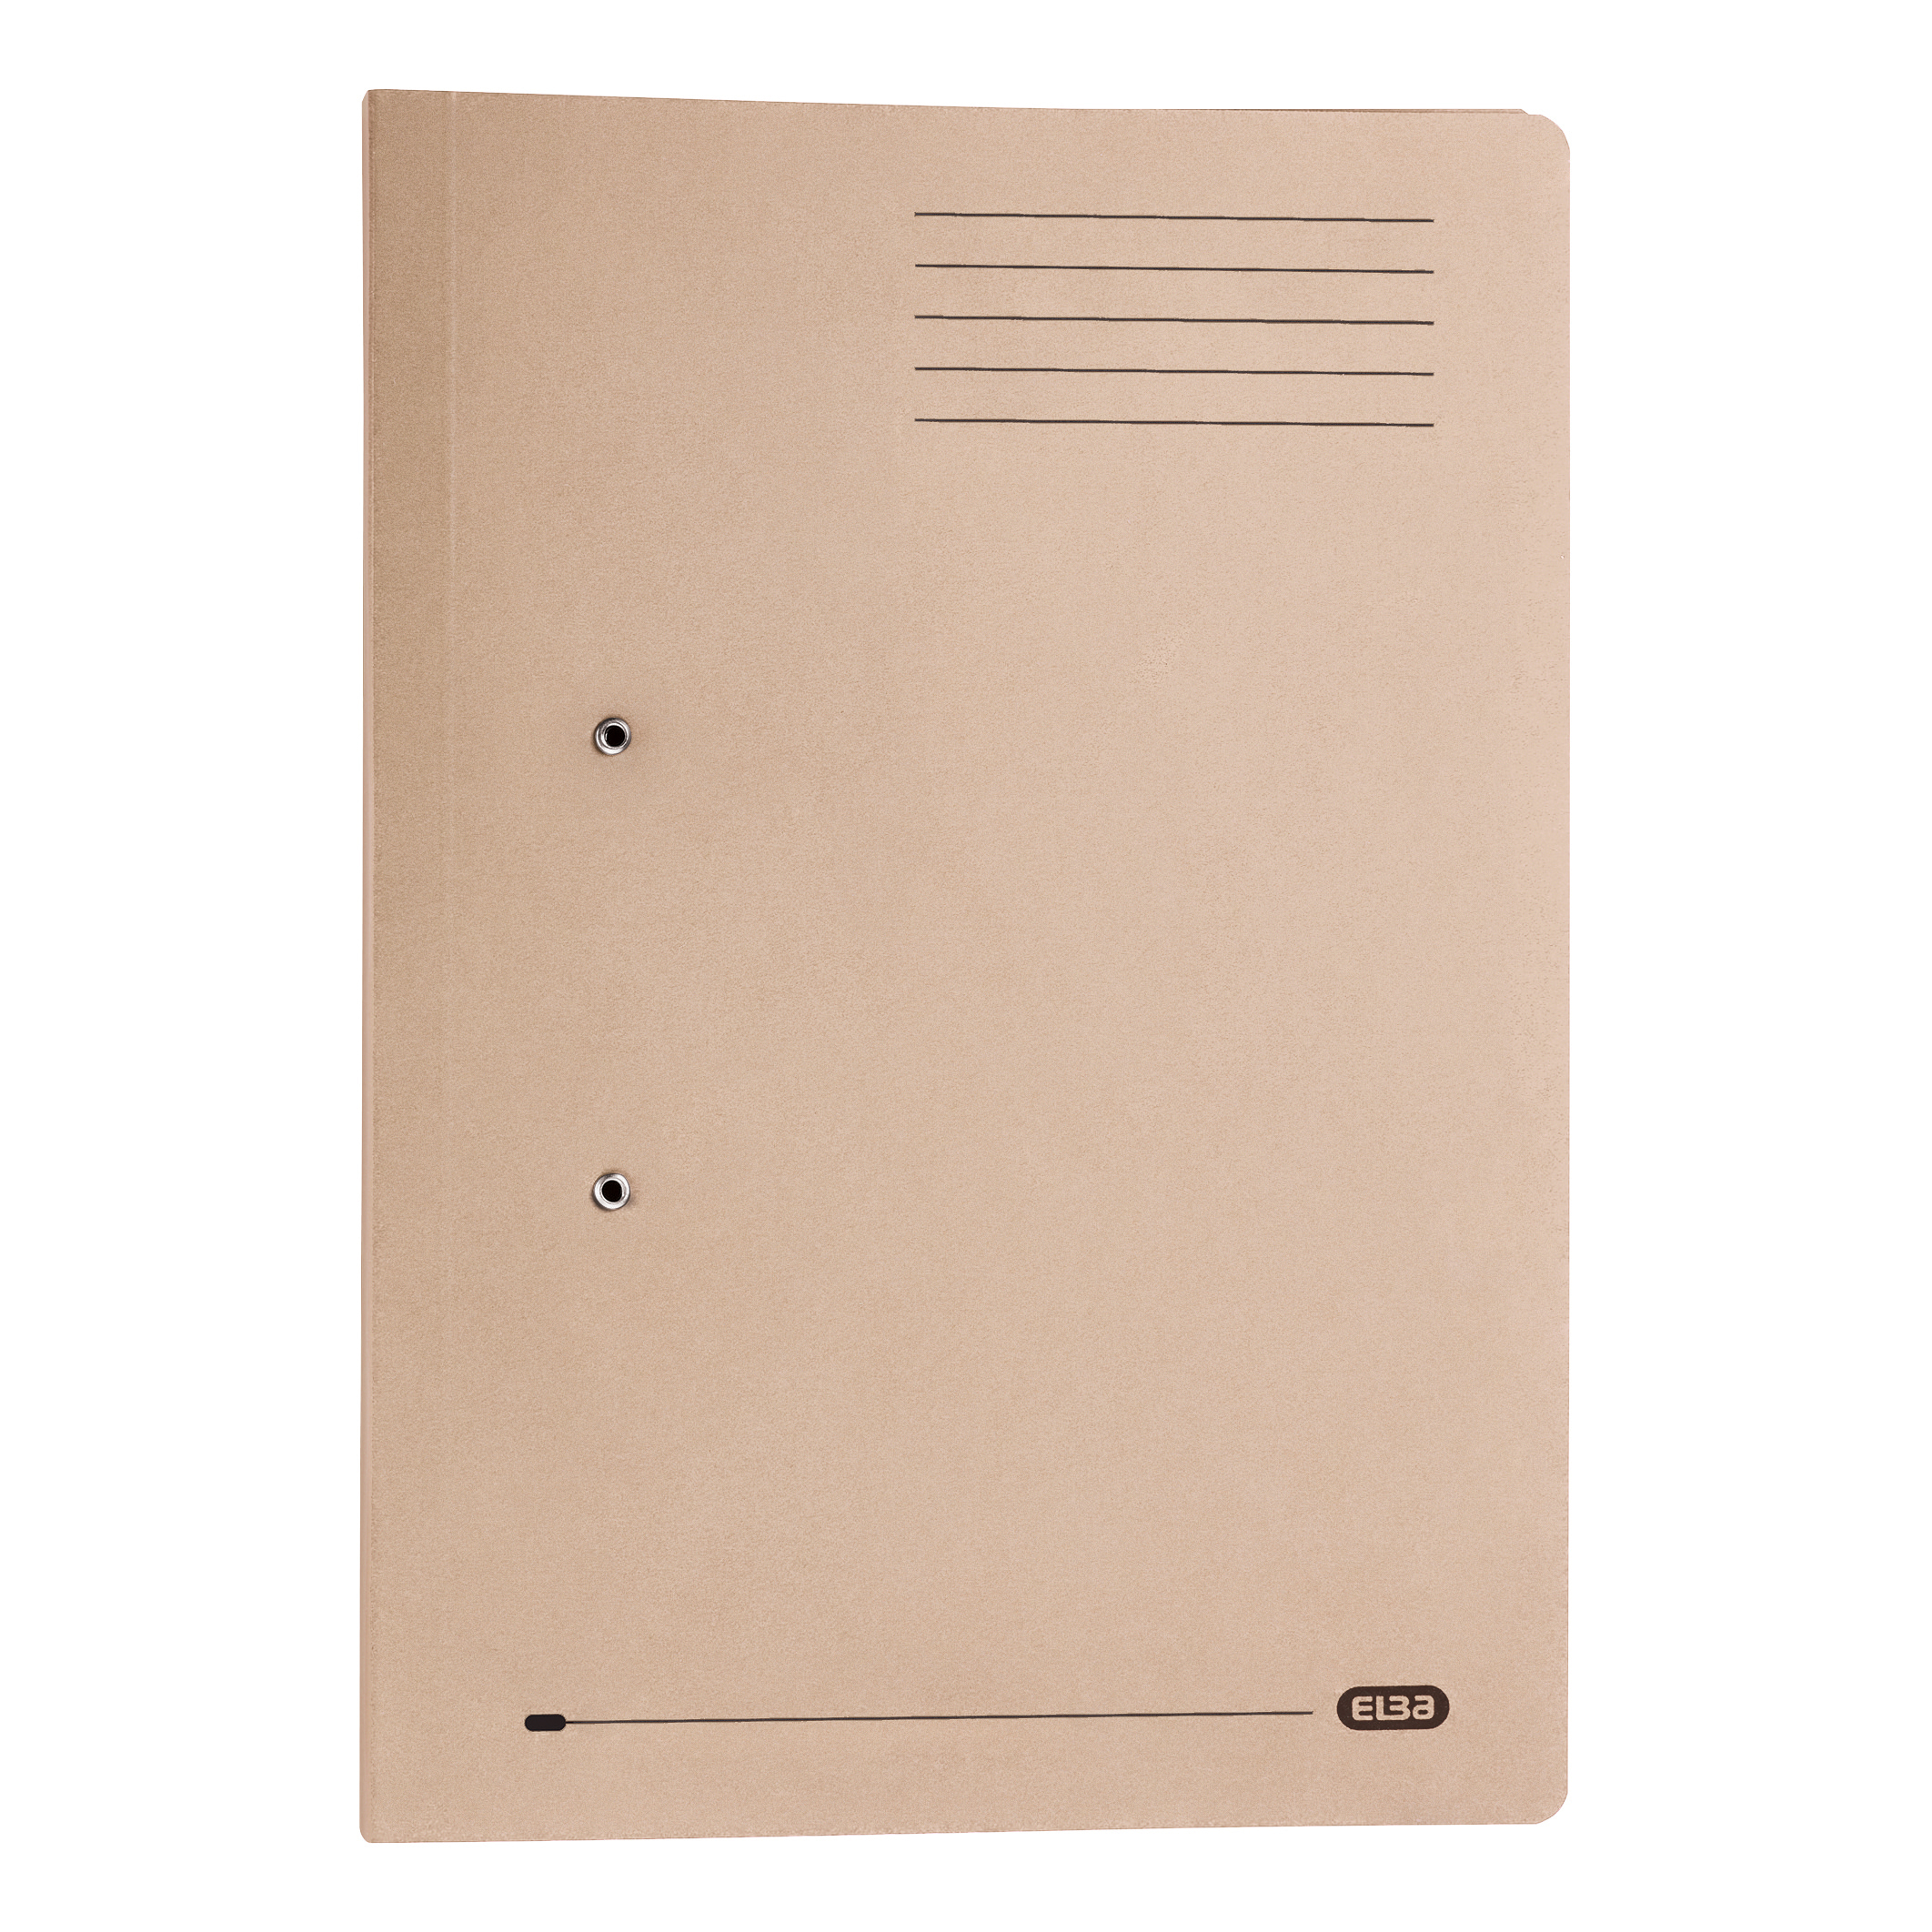 Elba Strongline Transfer Spring File Recycled Pocket 320gsm 36mm Foolscap Buff Ref 100090145 Pack 25